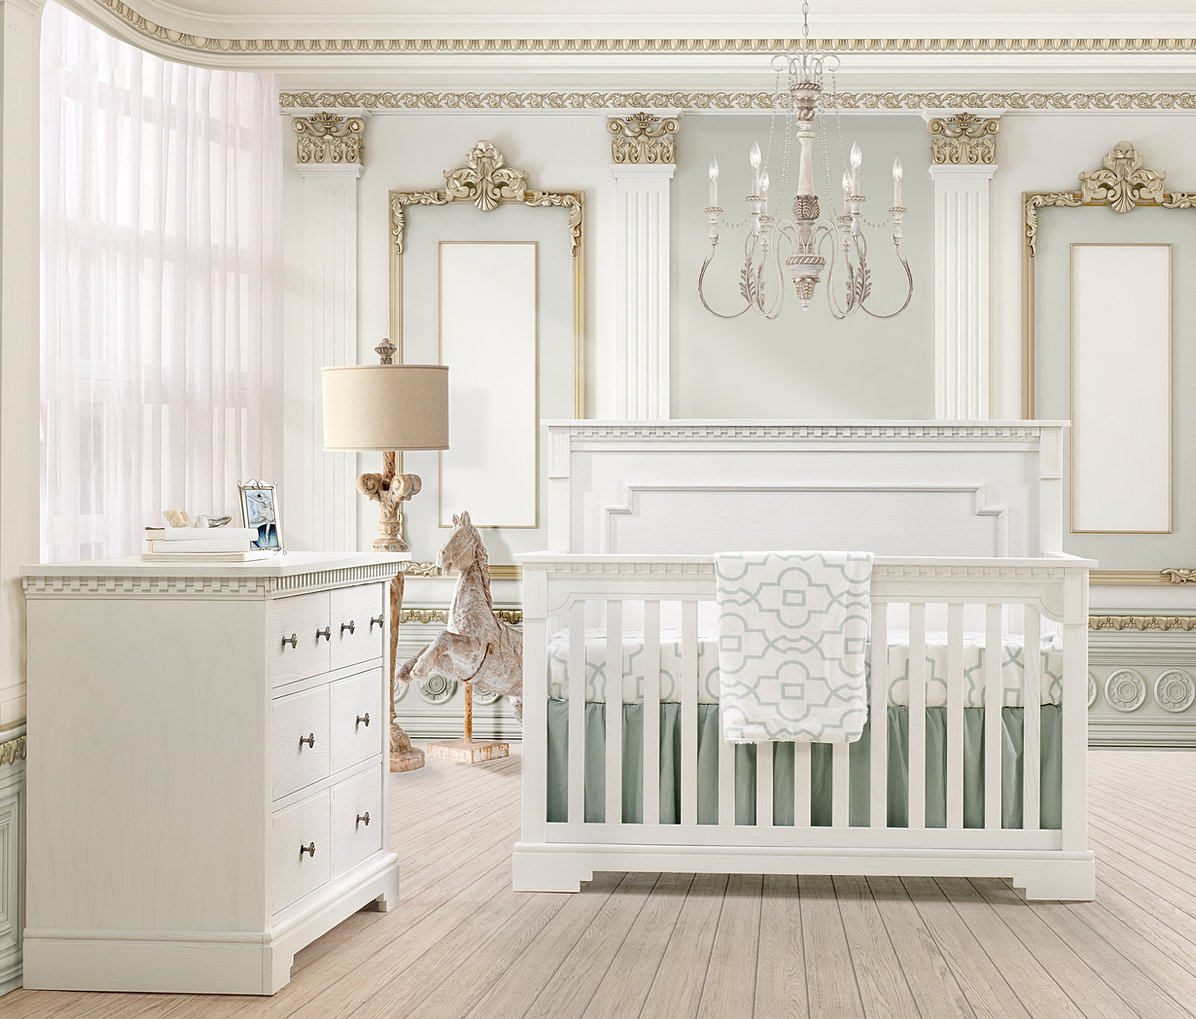 Used crib for sale atlanta - Ithaca Furniture Ithaca Collection Baby Room In